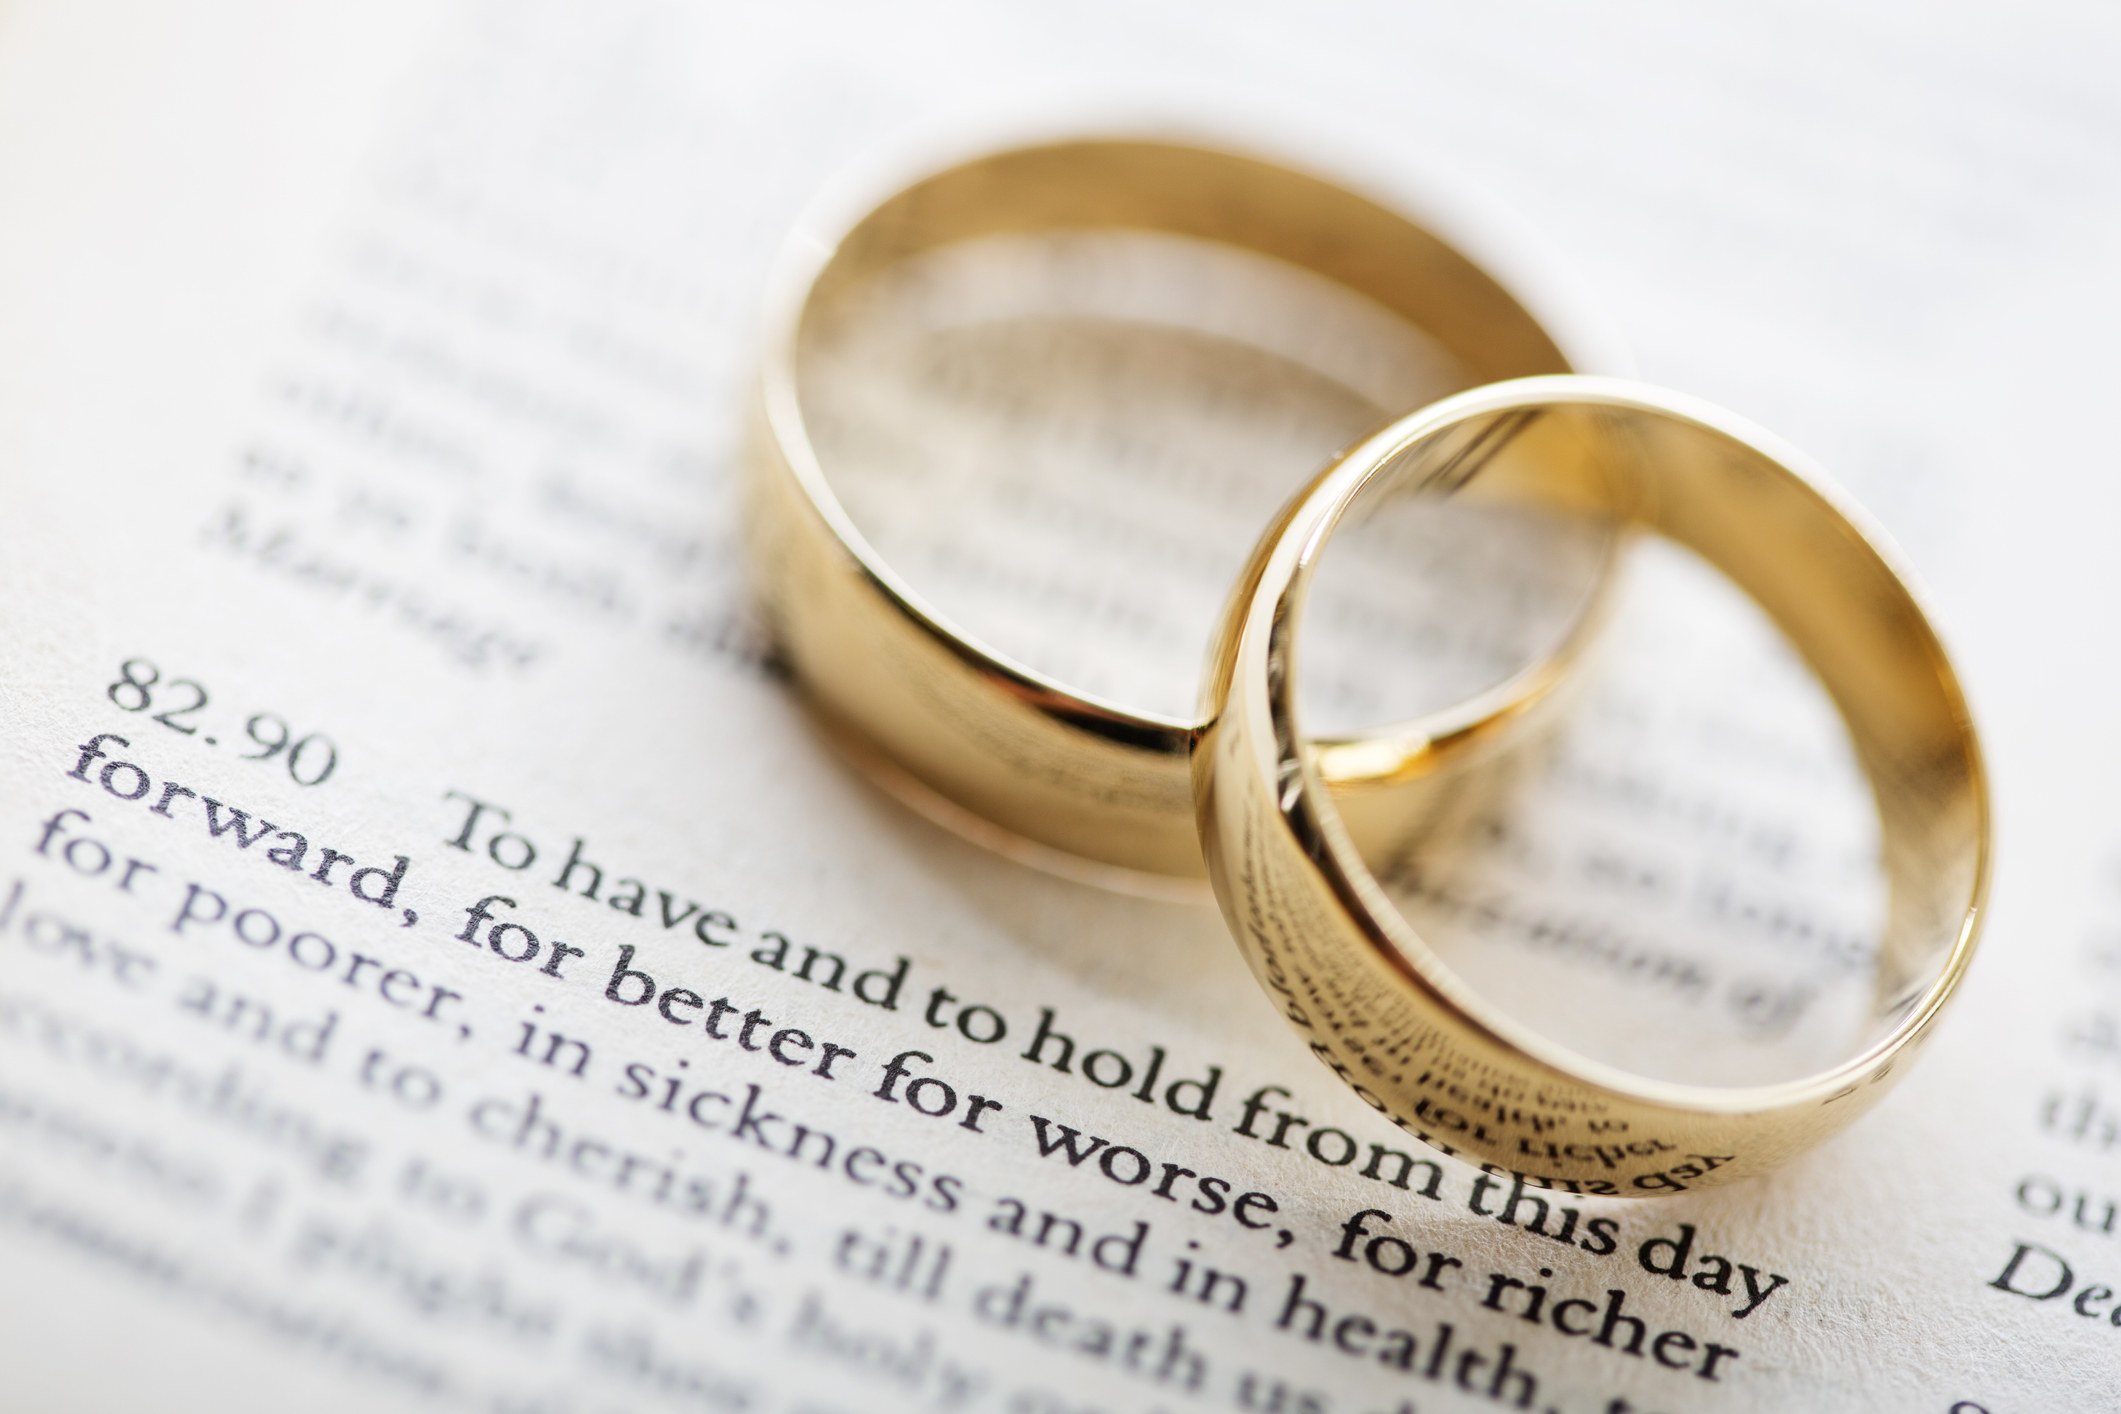 Two wedding bands on top of a piece of paper with vows print6ed on it